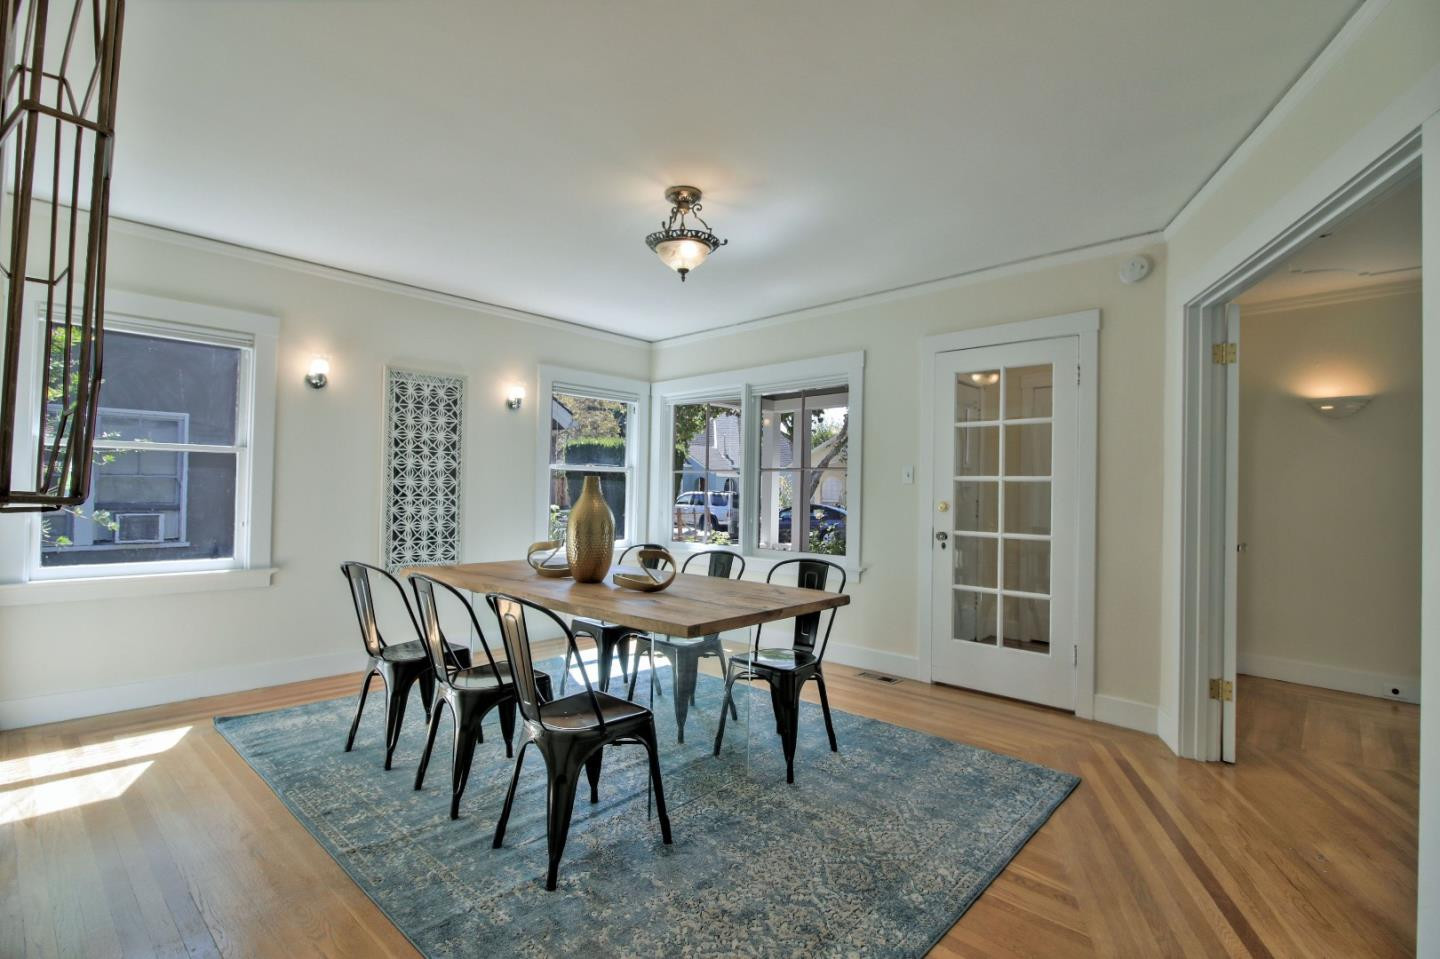 hardwood floor refinishing hamilton nj of homes for sale in san jose suzanne freeze coldwell banker for original 28925573182932048